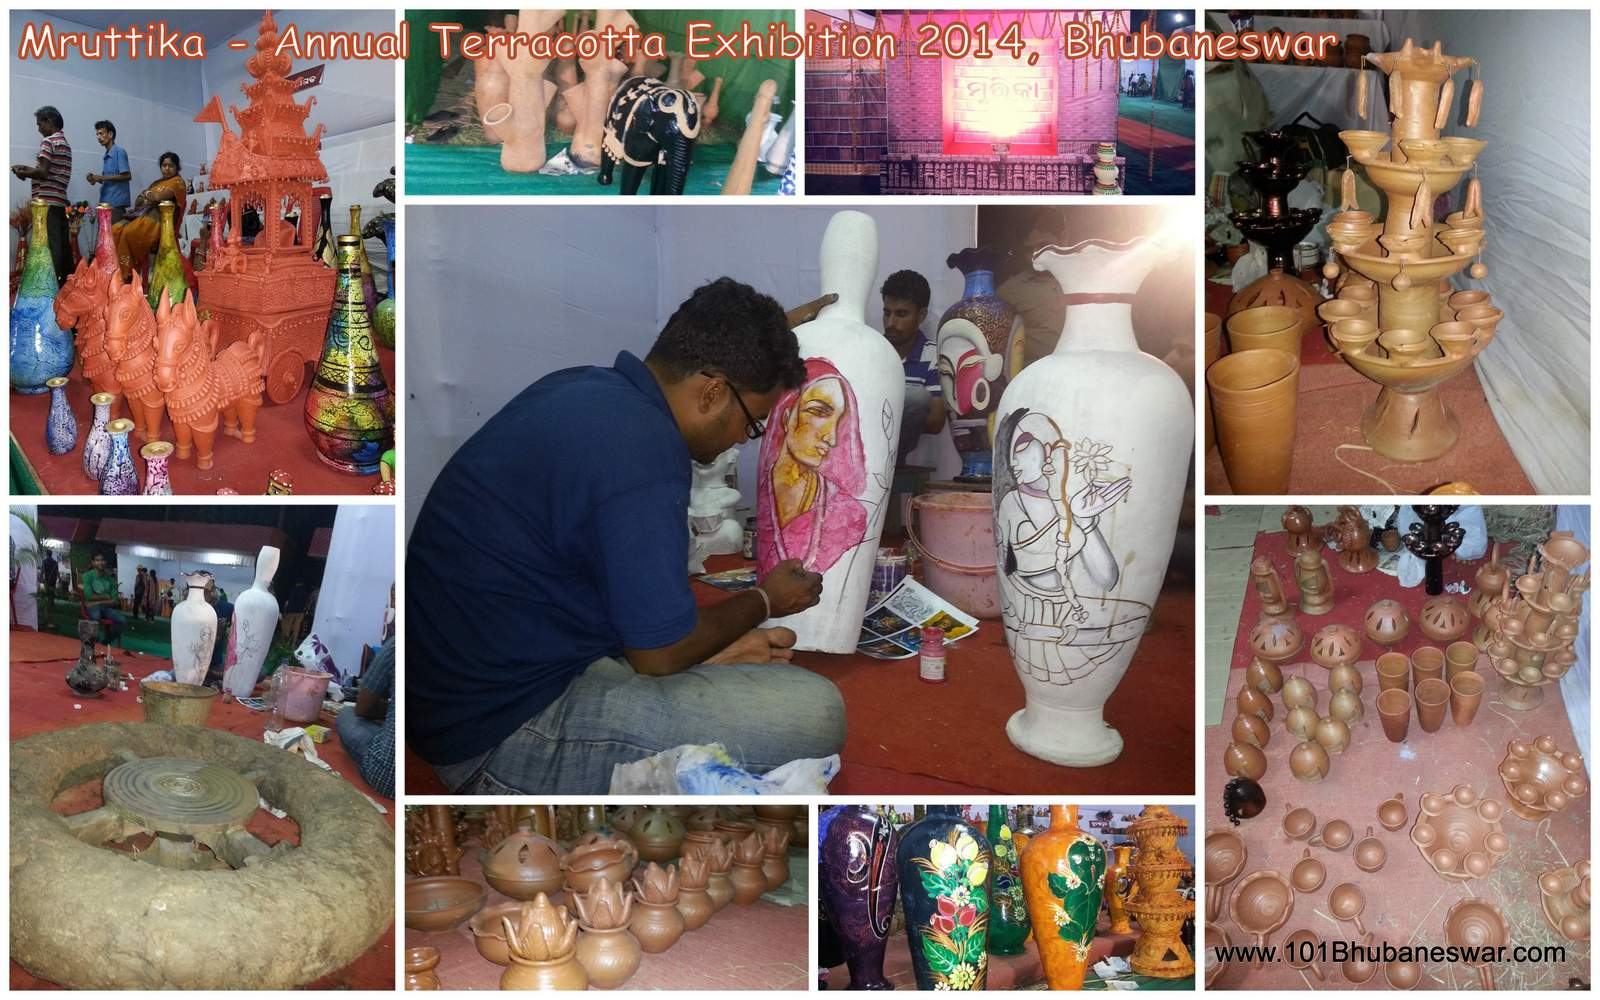 Mruttika, Annual Terracotta Exhibition 2014